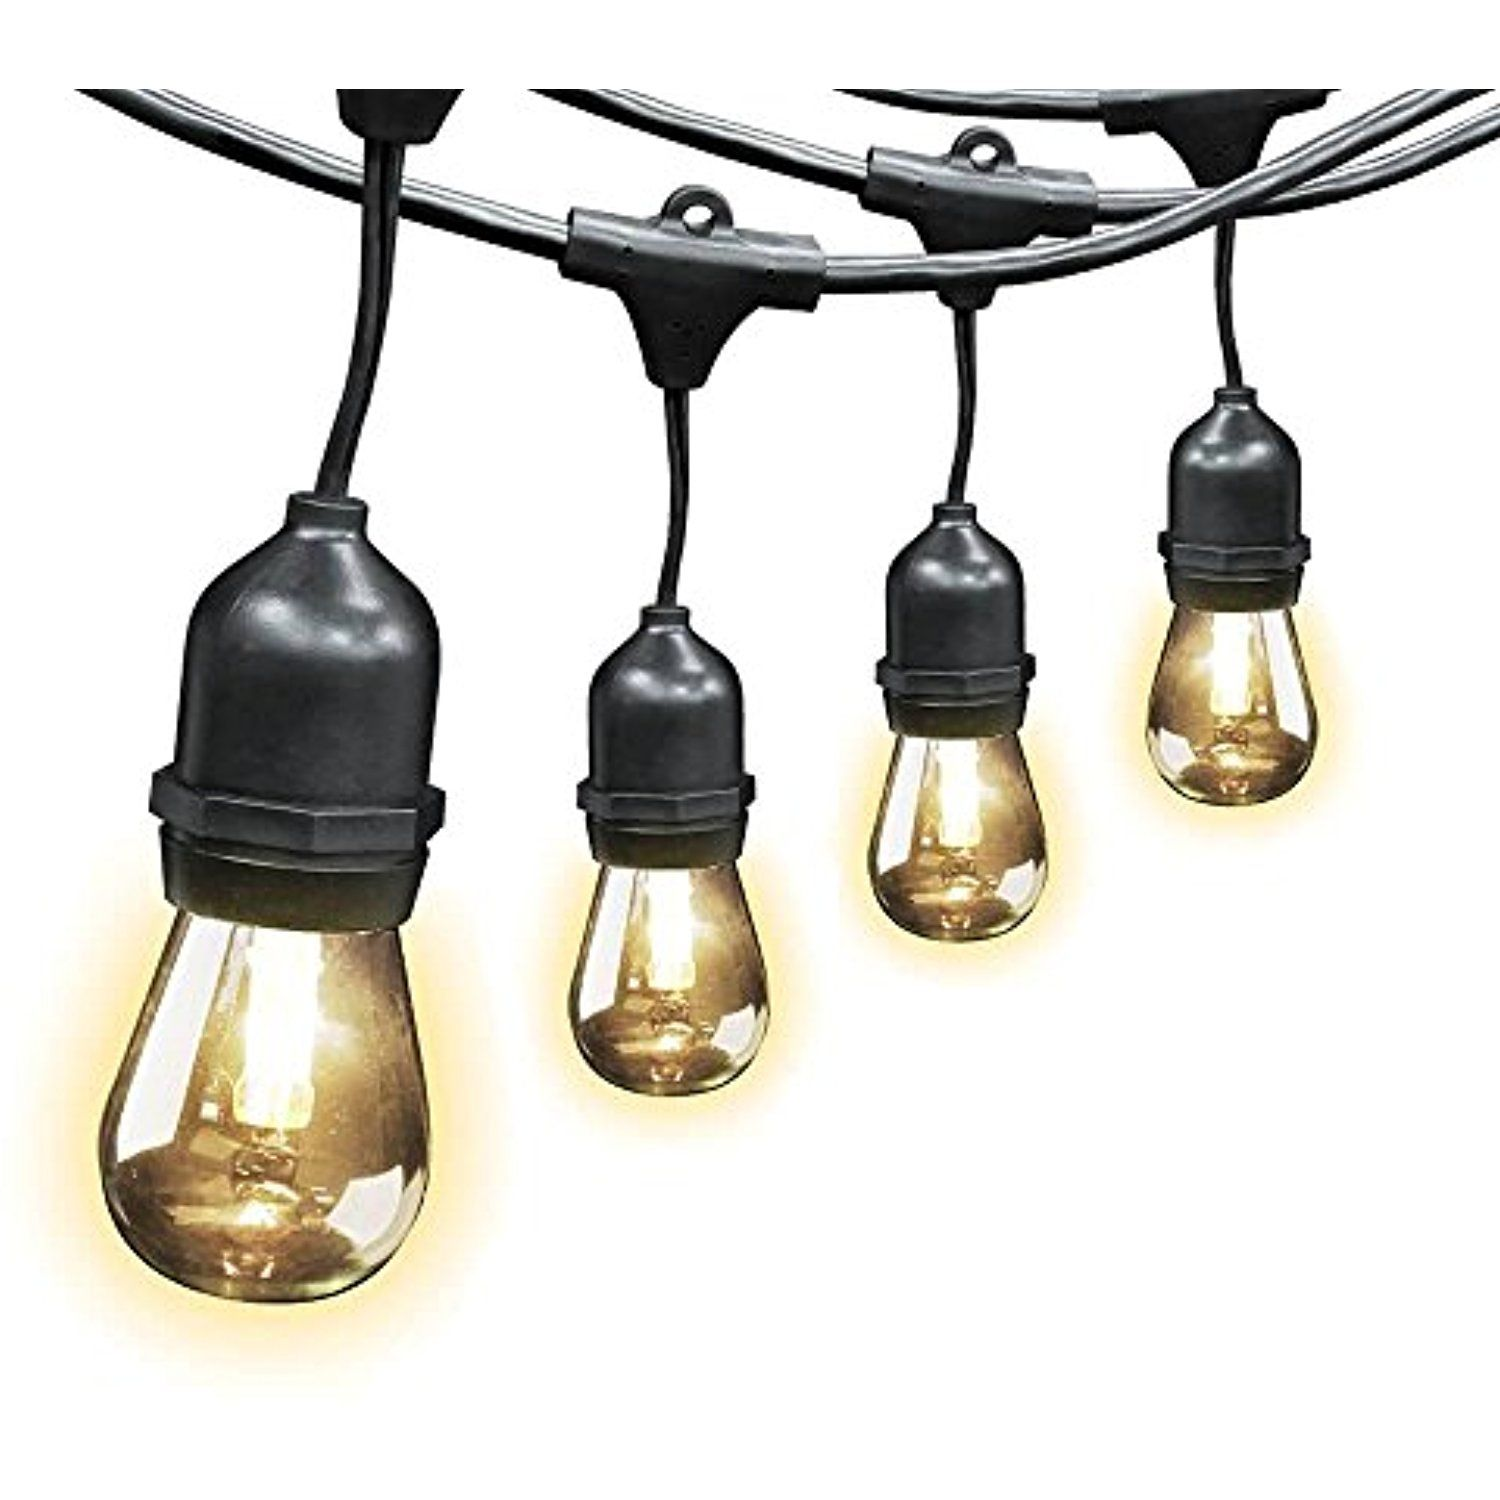 Feit Electric String Lights New Feit Electric Indooroutdoor String Lights 48Ft  Great For Homes Design Ideas